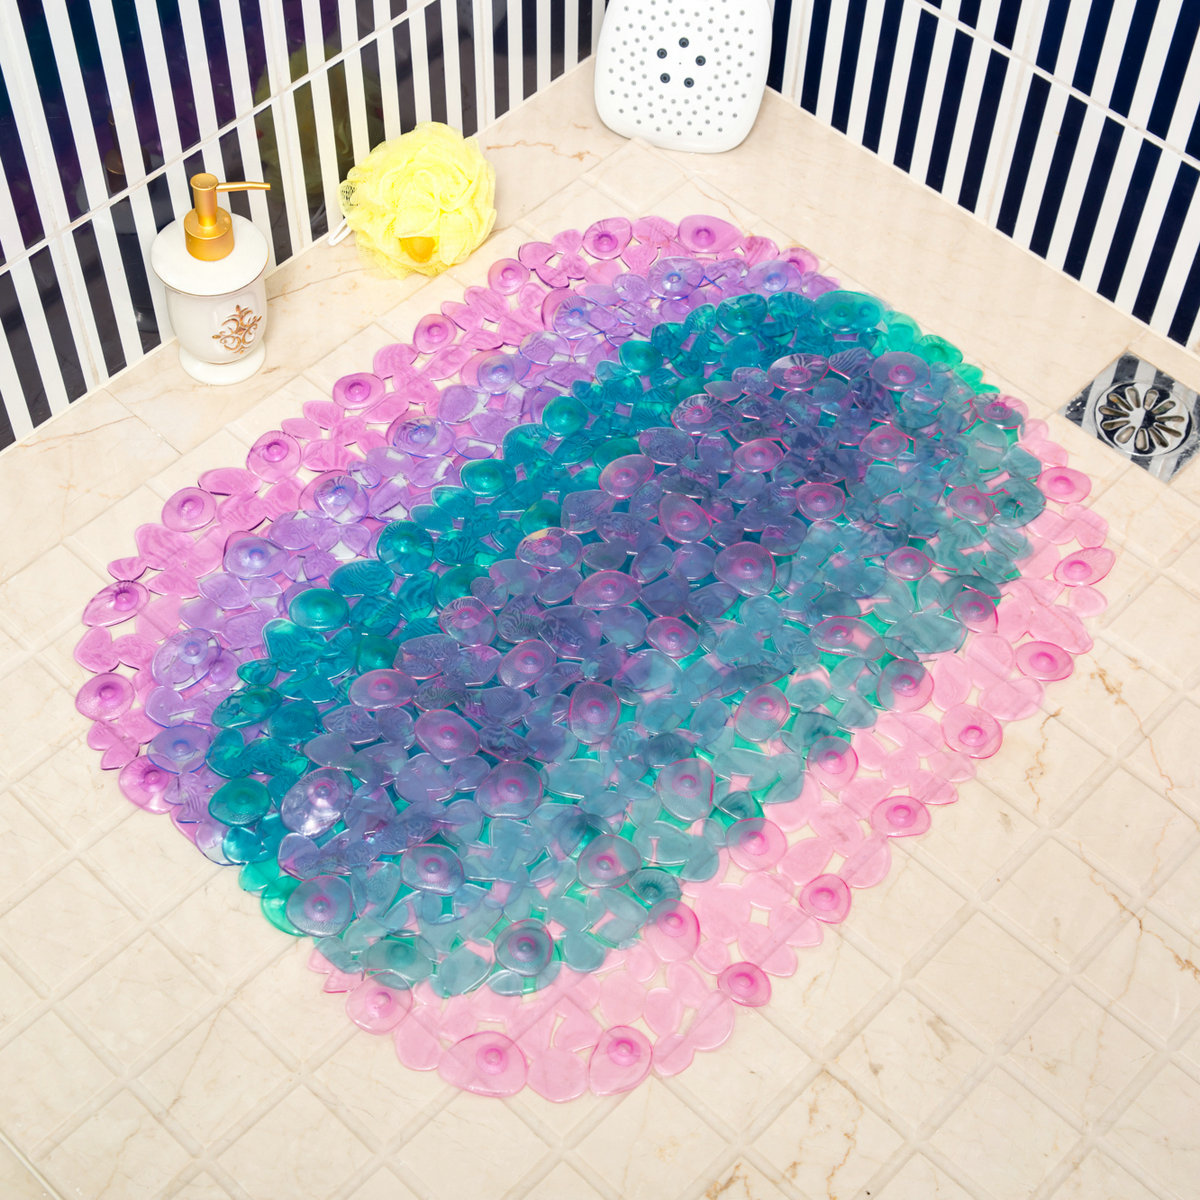 mat large floor bathtub liner bath slip elderly colorful mats bathroom for shower fabric tub extra rubber non